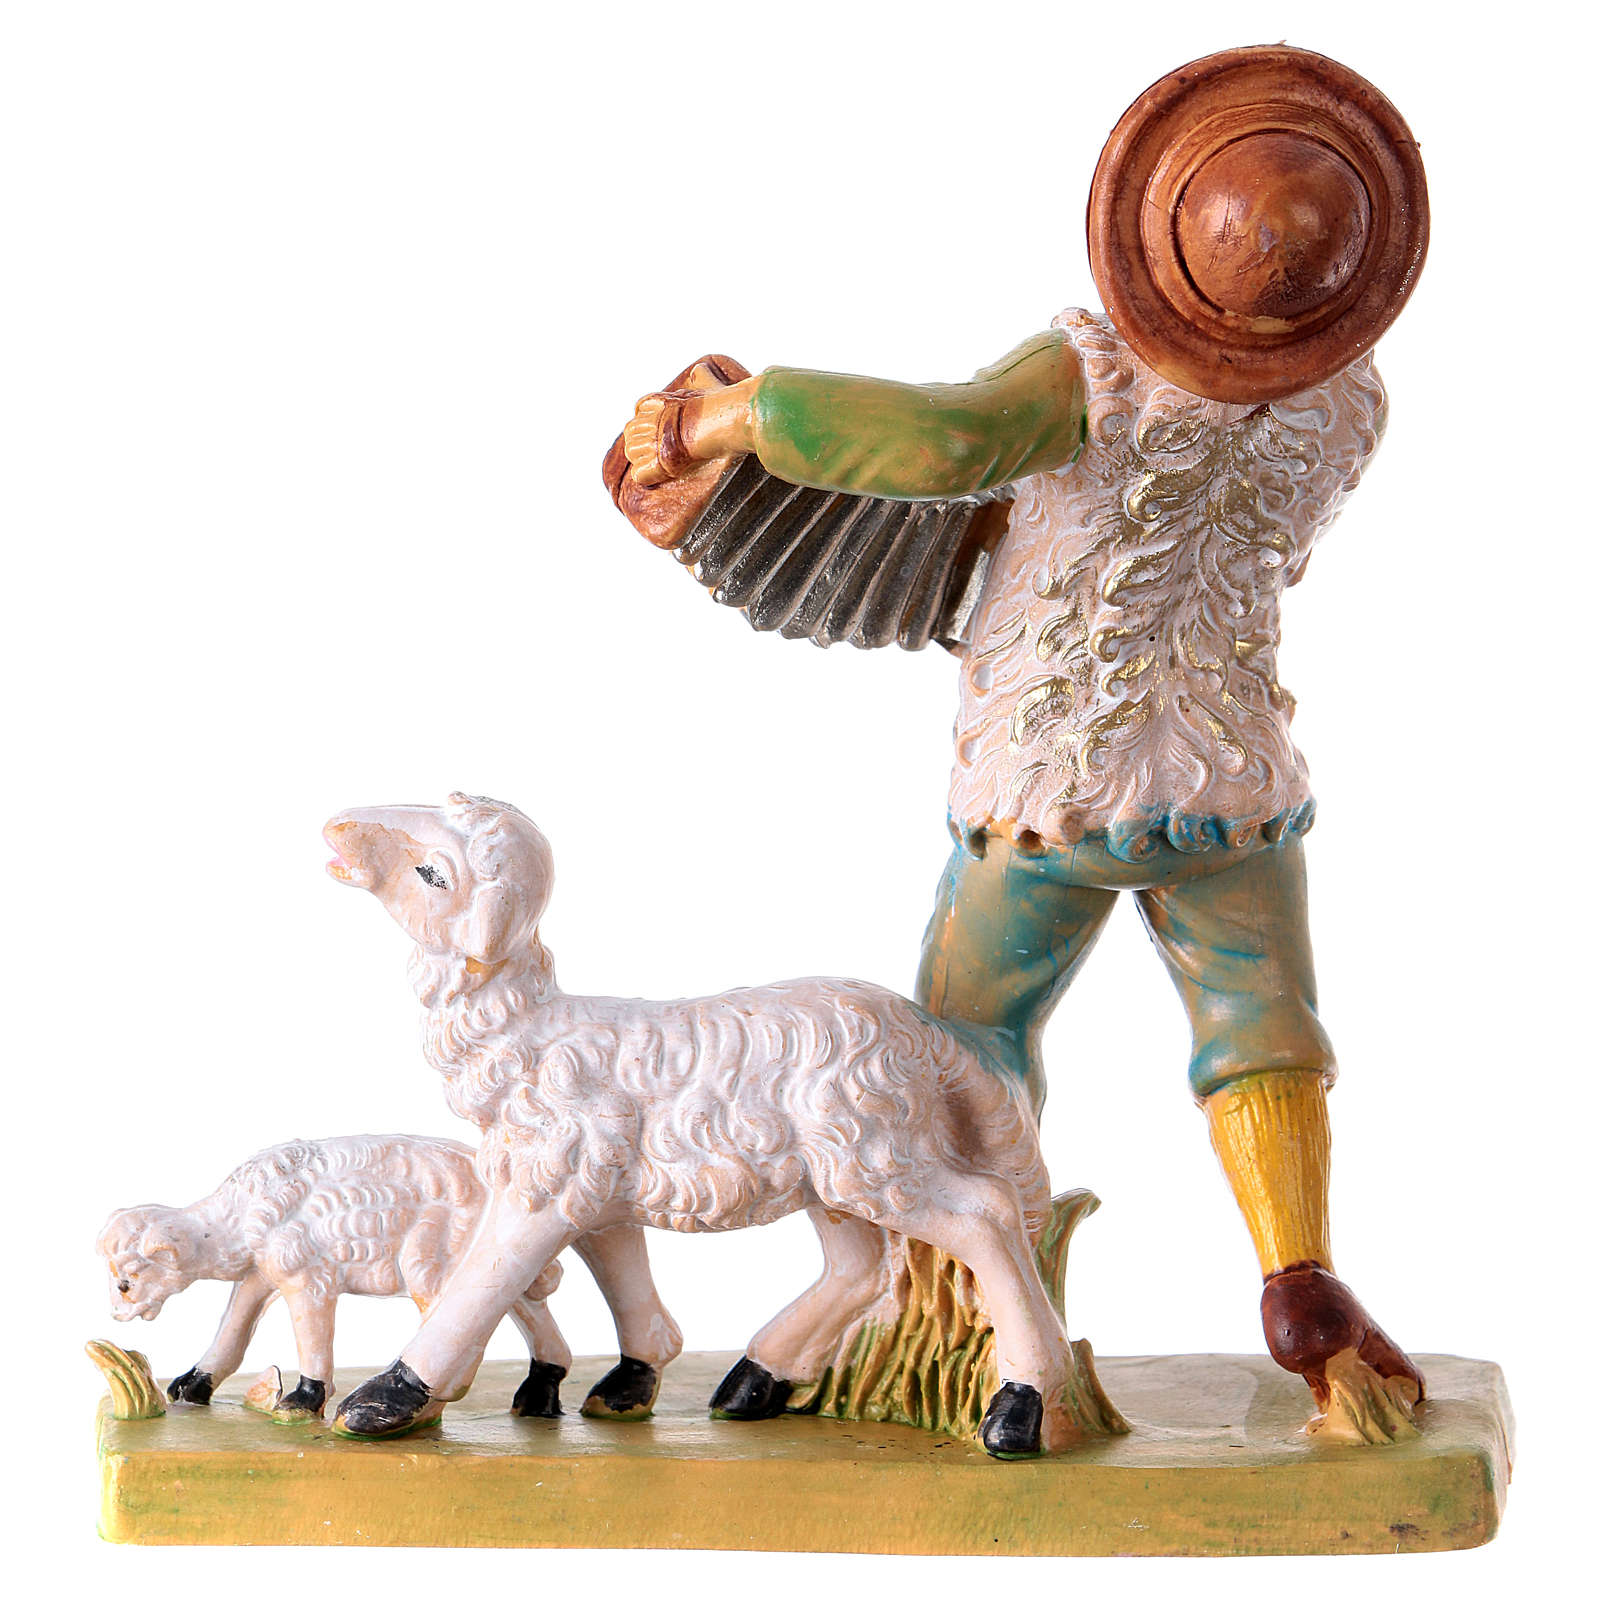 Man with accordion 10 cm for Nativity Scene 3